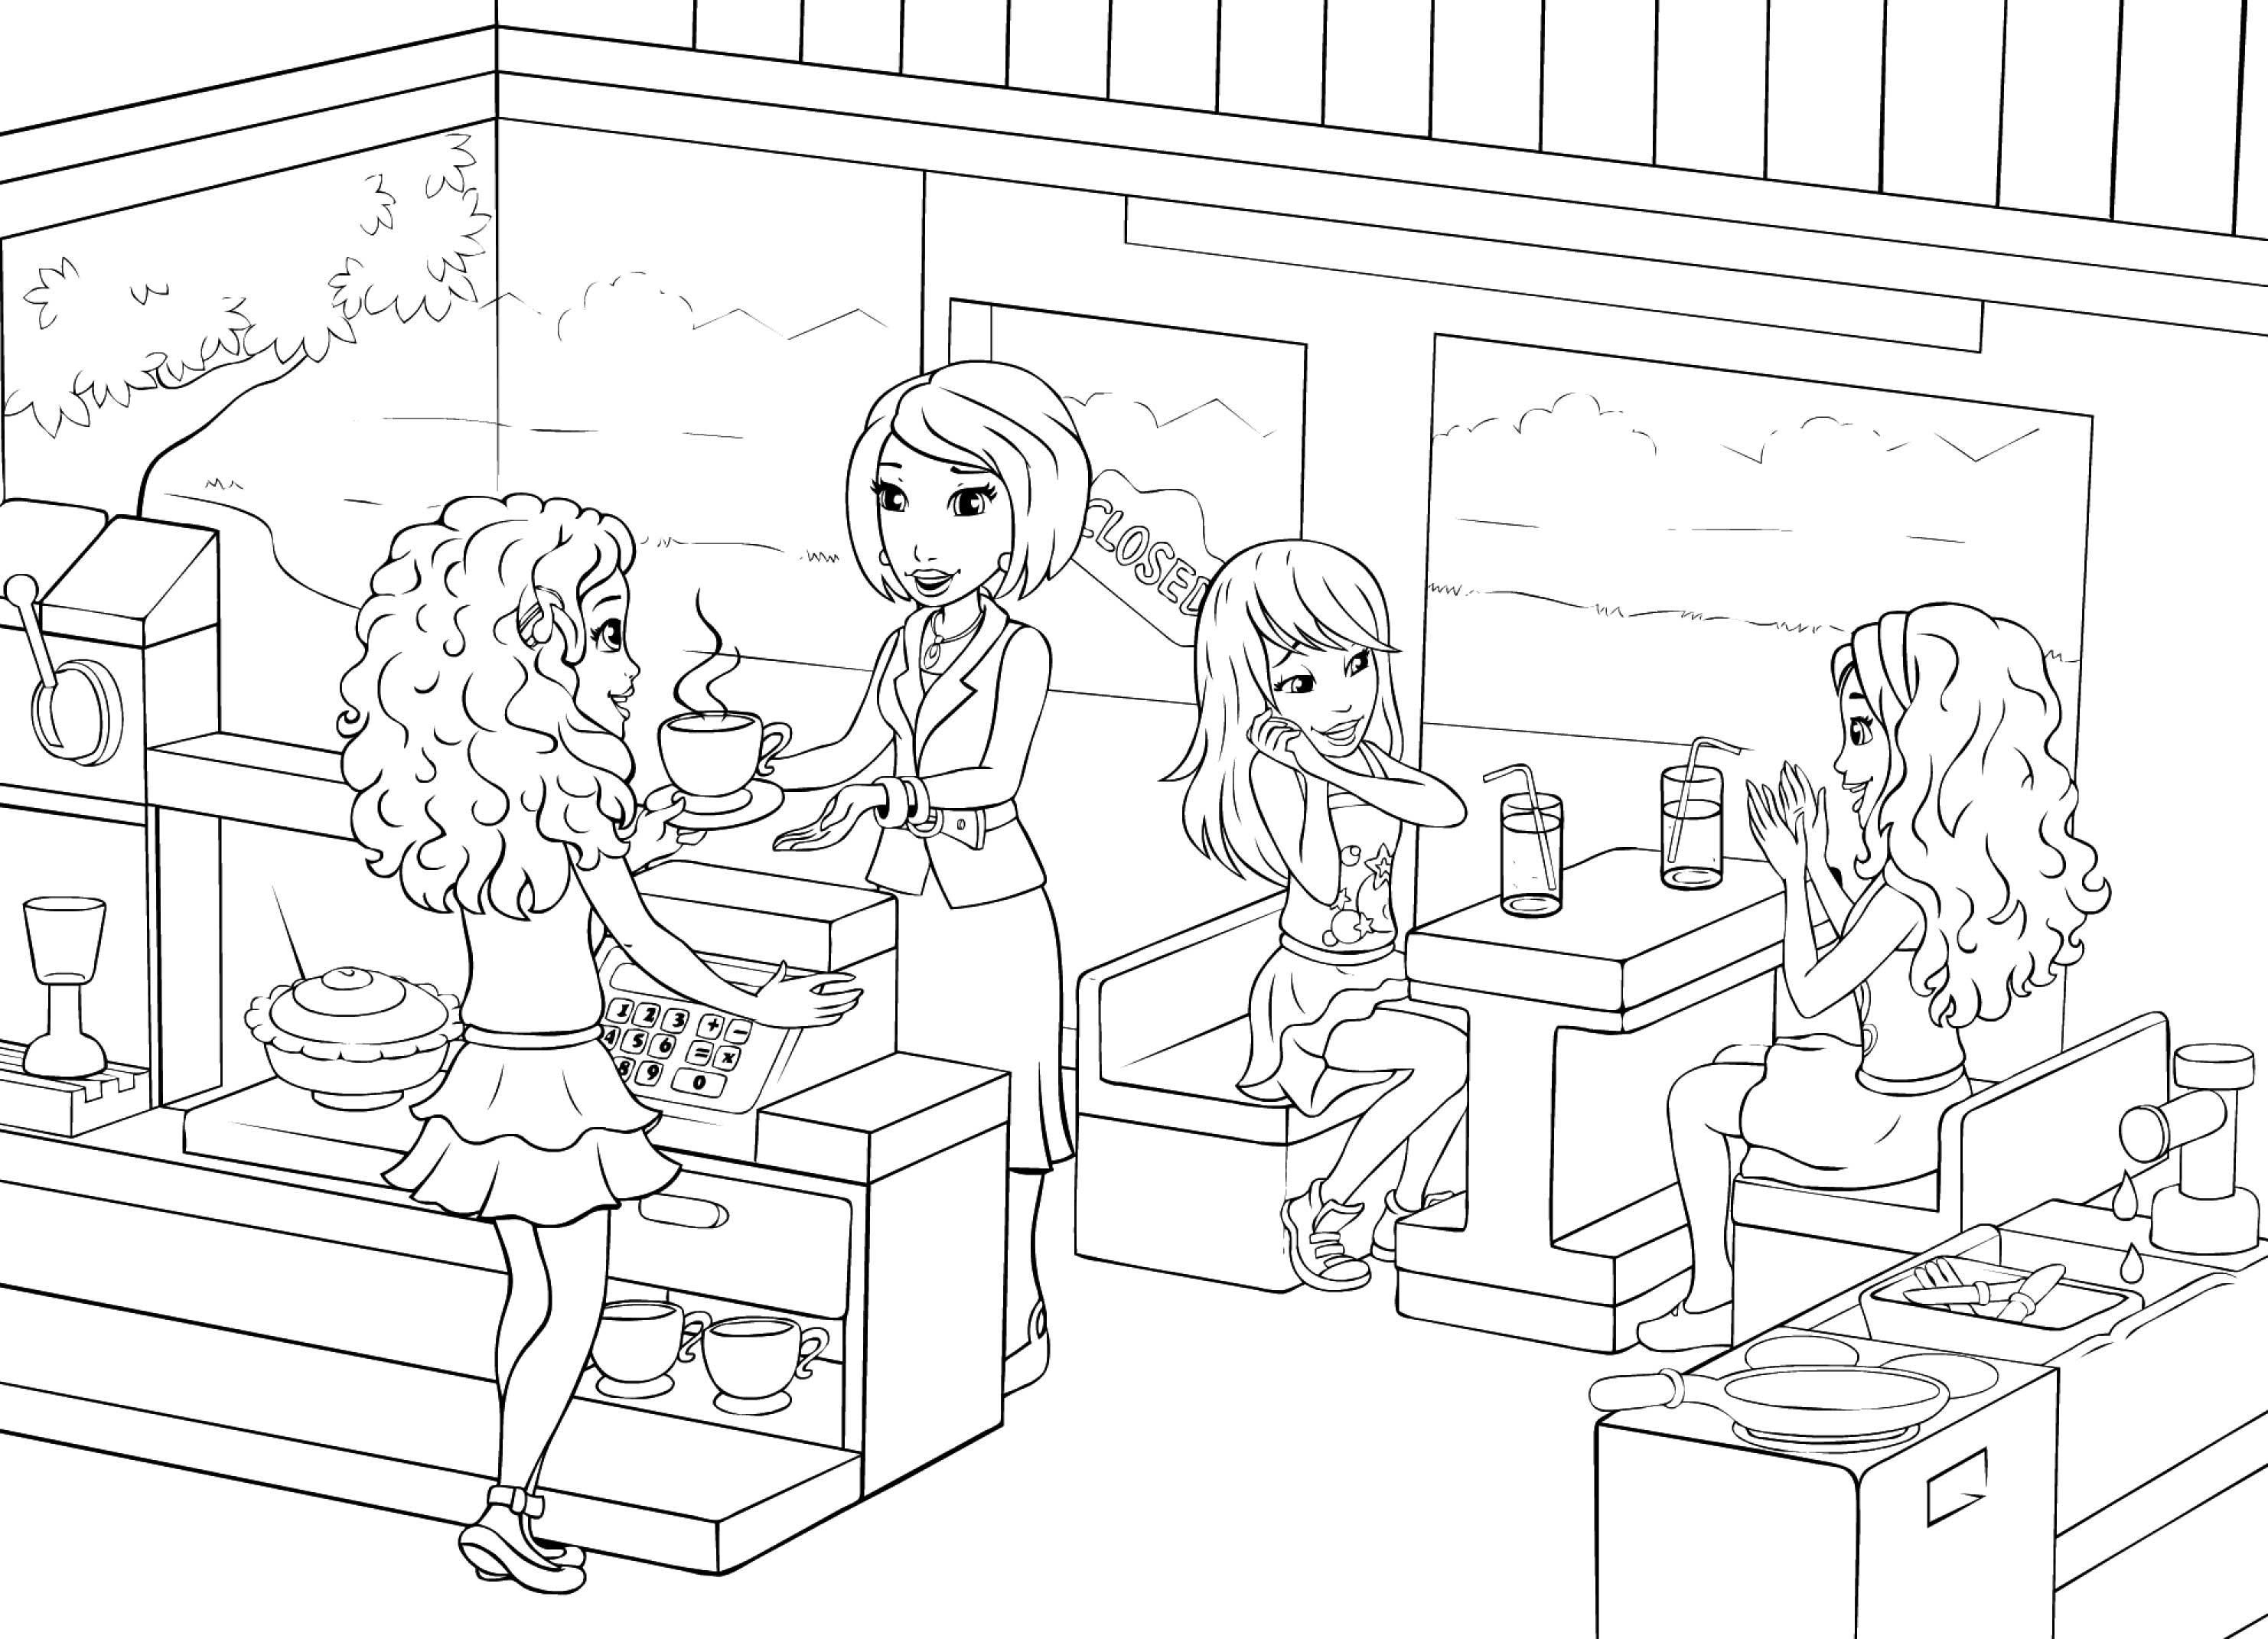 coloring pages of lego friends lego friends coloring pages to download and print for free of coloring lego pages friends